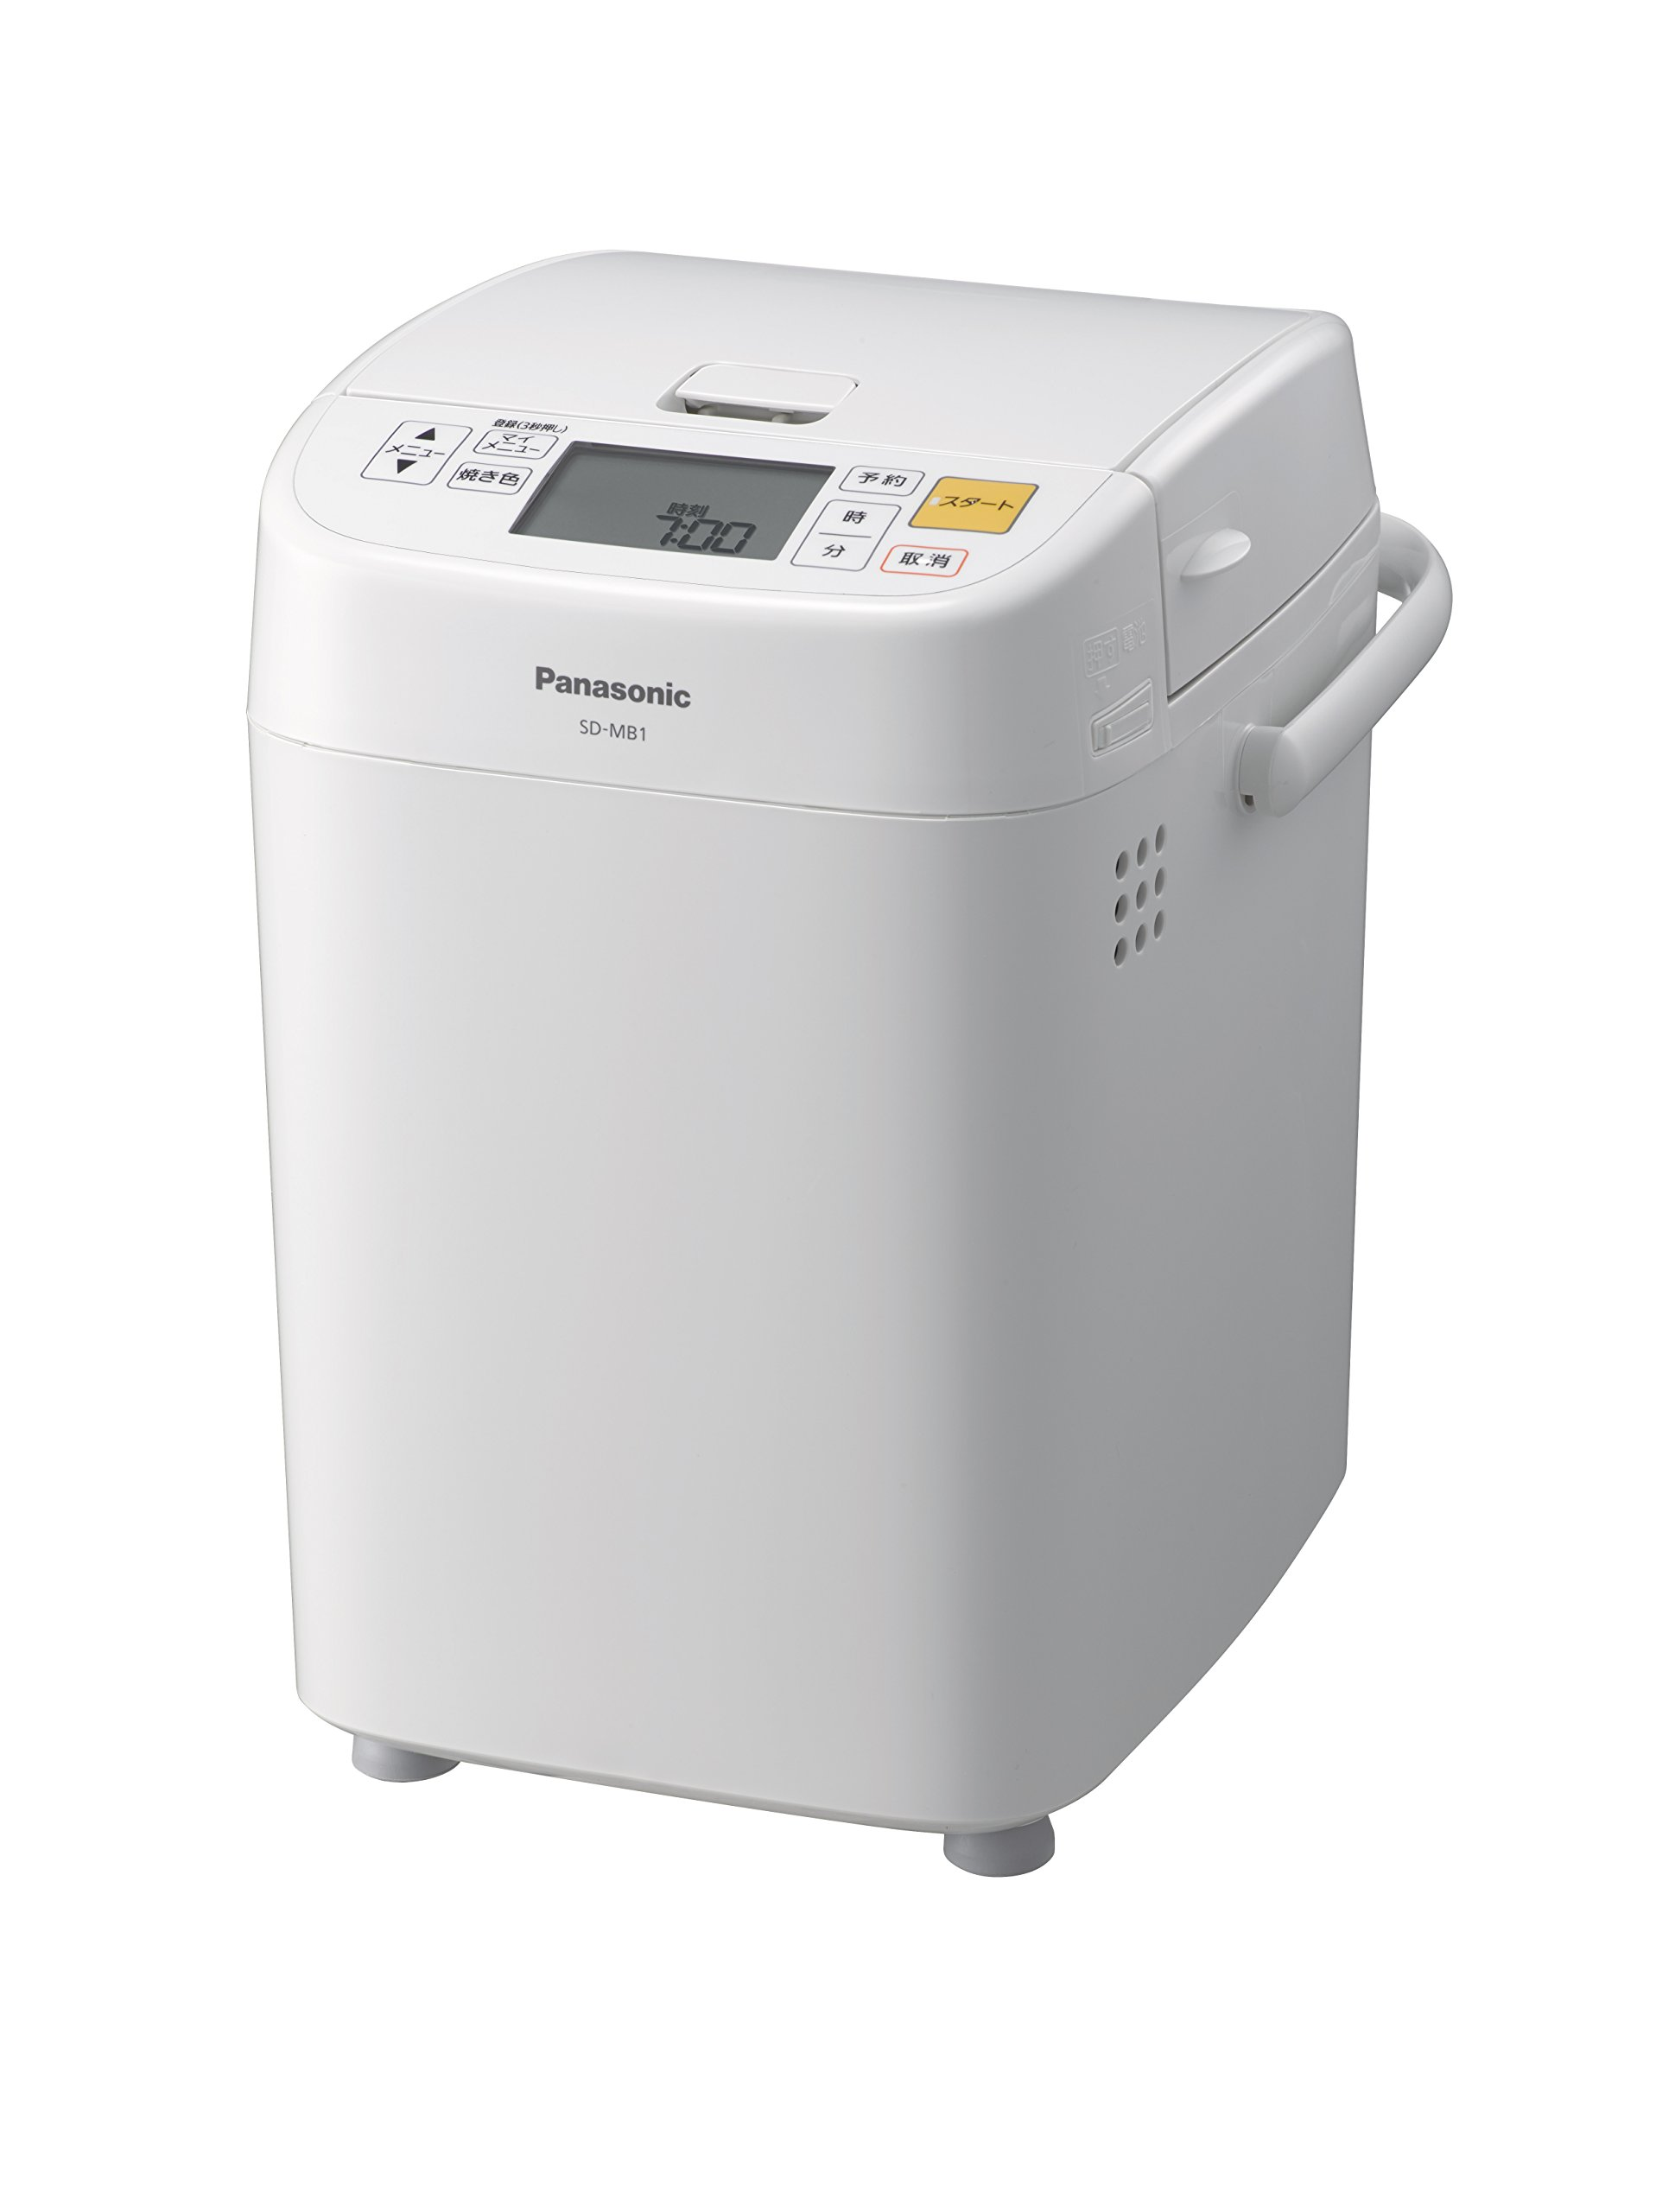 Panasonic Home Bakery (1 loaf type) SD-MB1-W (White)【Japan Domestic genuine products】